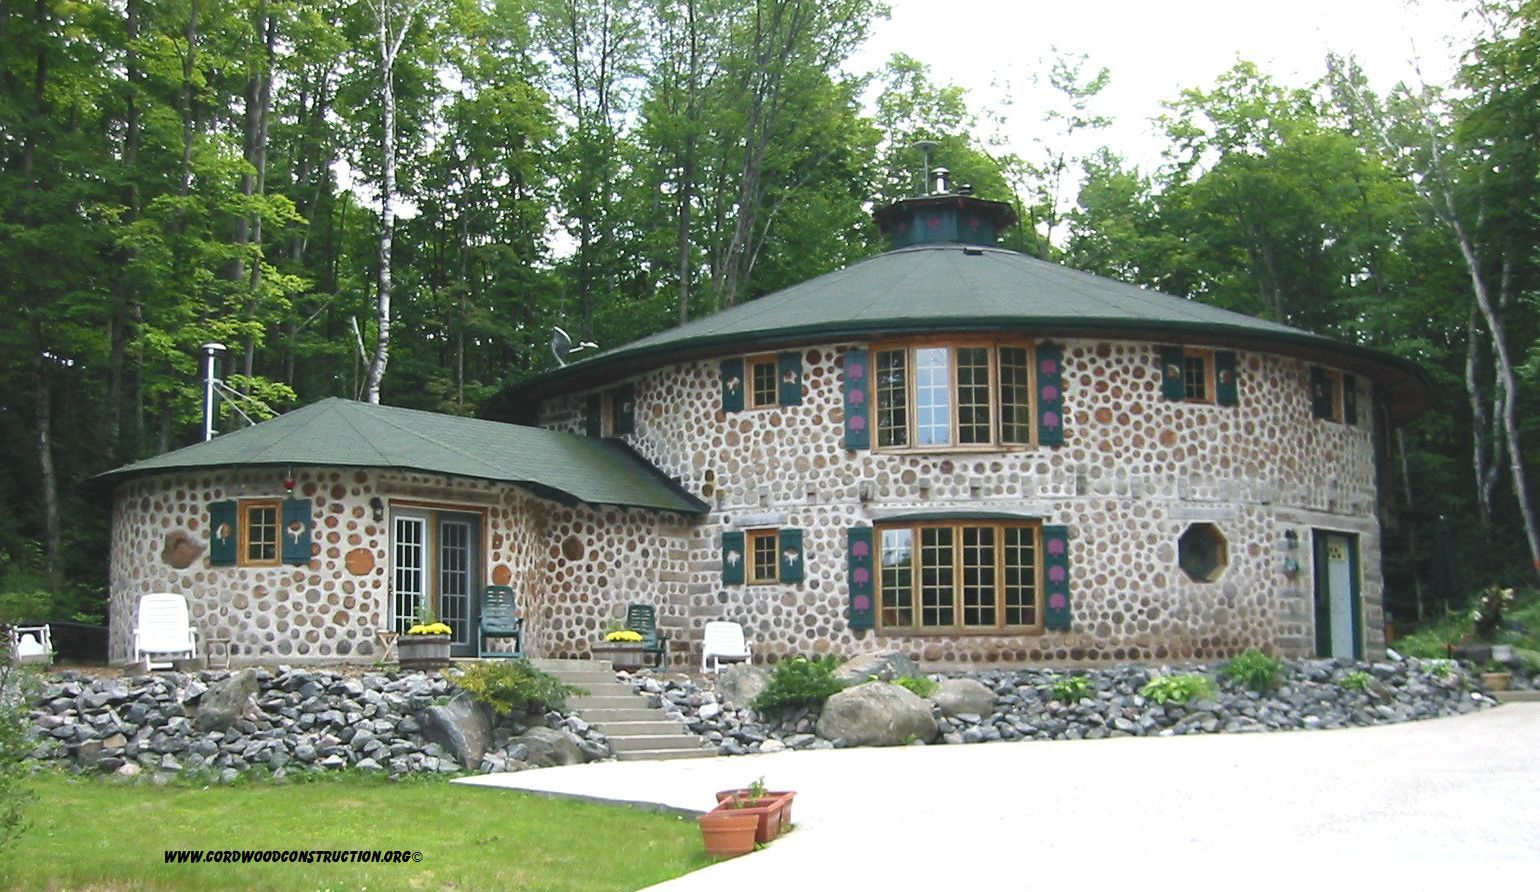 Cordwood in Bracebridge Ontario by Richard Flatau cordwoodconstruction.org